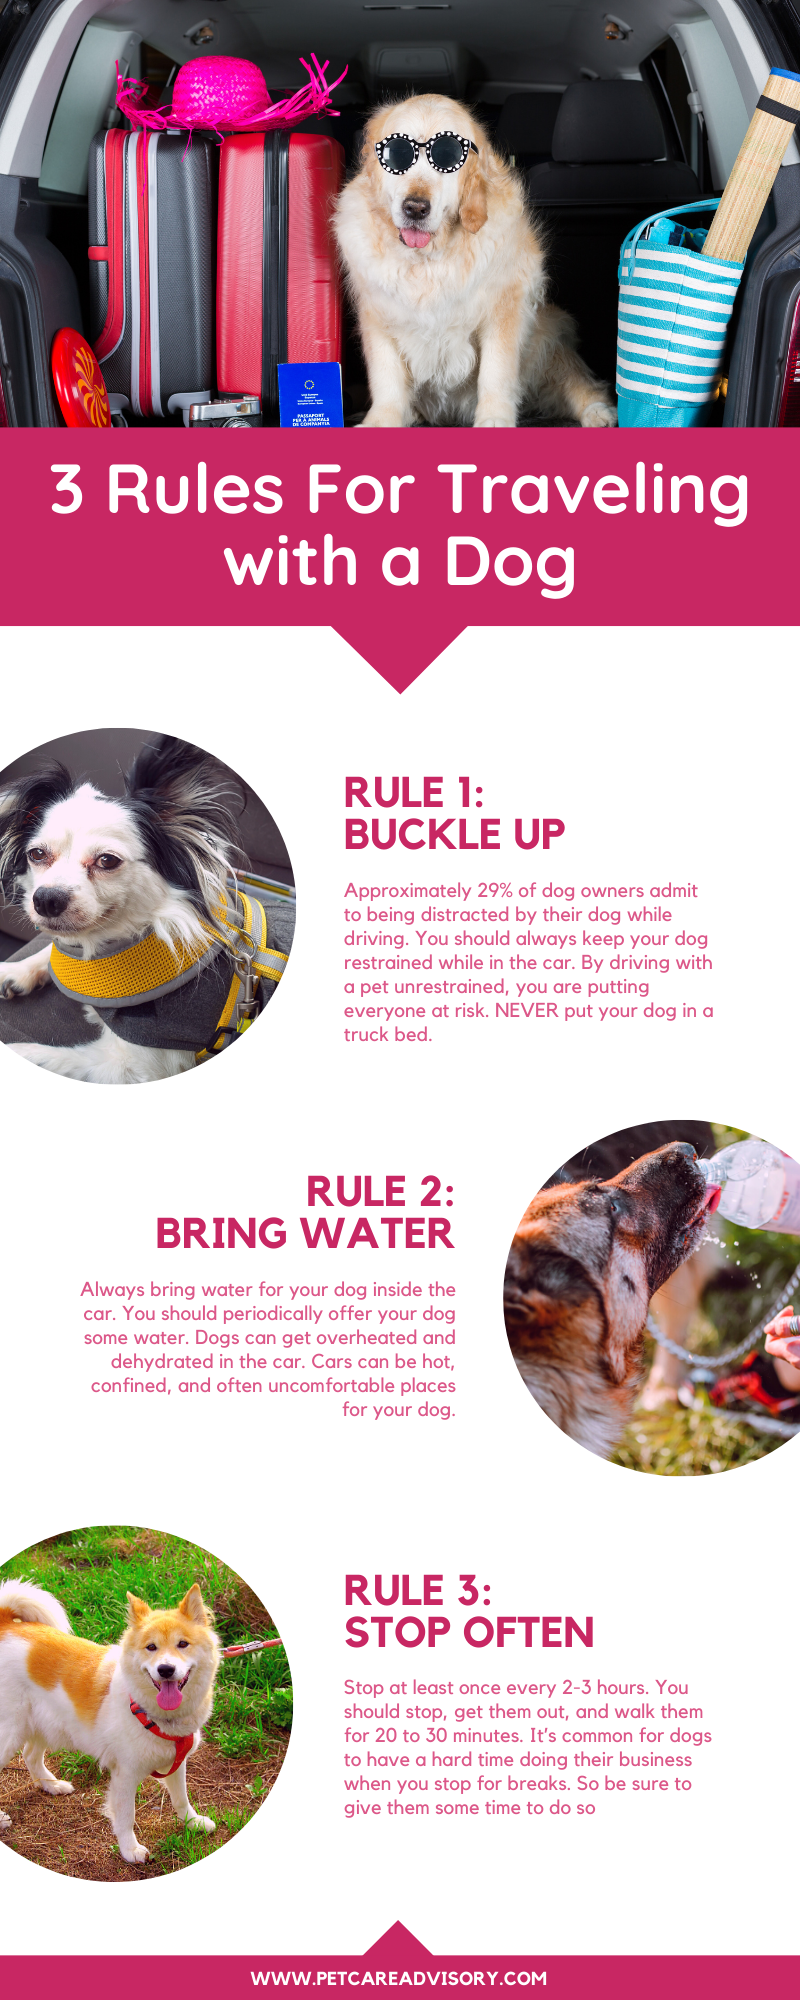 Rules for Traveling with a Dog in the Car Infographic